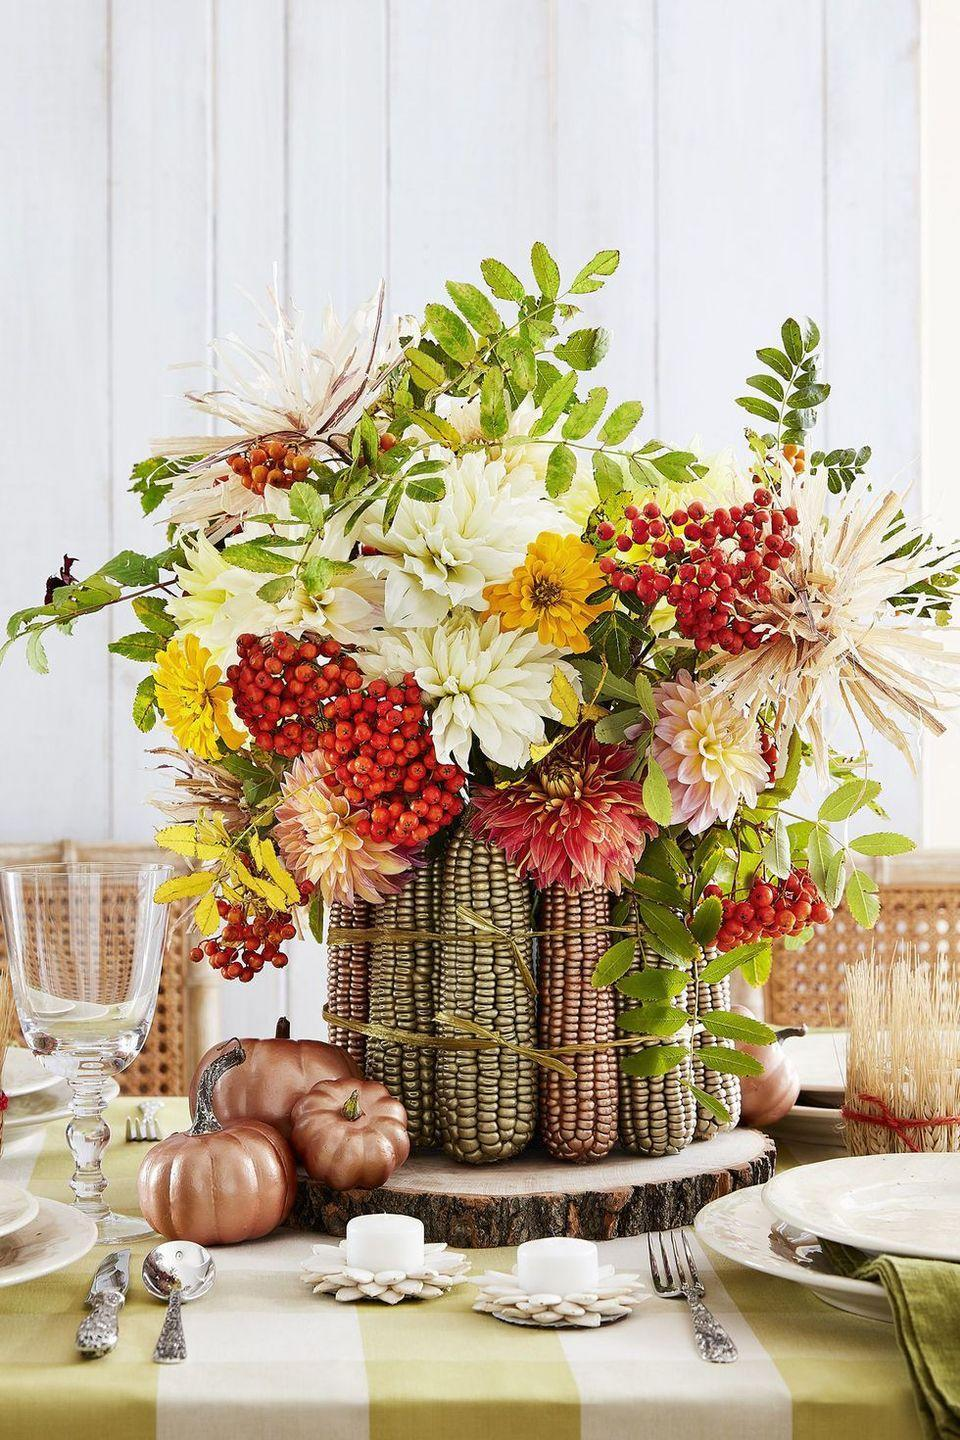 "<p>Use the season's finest to dress up a basic vase. First, spray paint dried cobs in metallic hues, and then tie them around a vase with raffia. </p><p><em><a href=""https://www.countryliving.com/entertaining/g2130/thanksgiving-centerpieces/?slide=6"" rel=""nofollow noopener"" target=""_blank"" data-ylk=""slk:Get the tutorial at Country Living »"" class=""link rapid-noclick-resp"">Get the tutorial at Country Living »</a></em></p>"